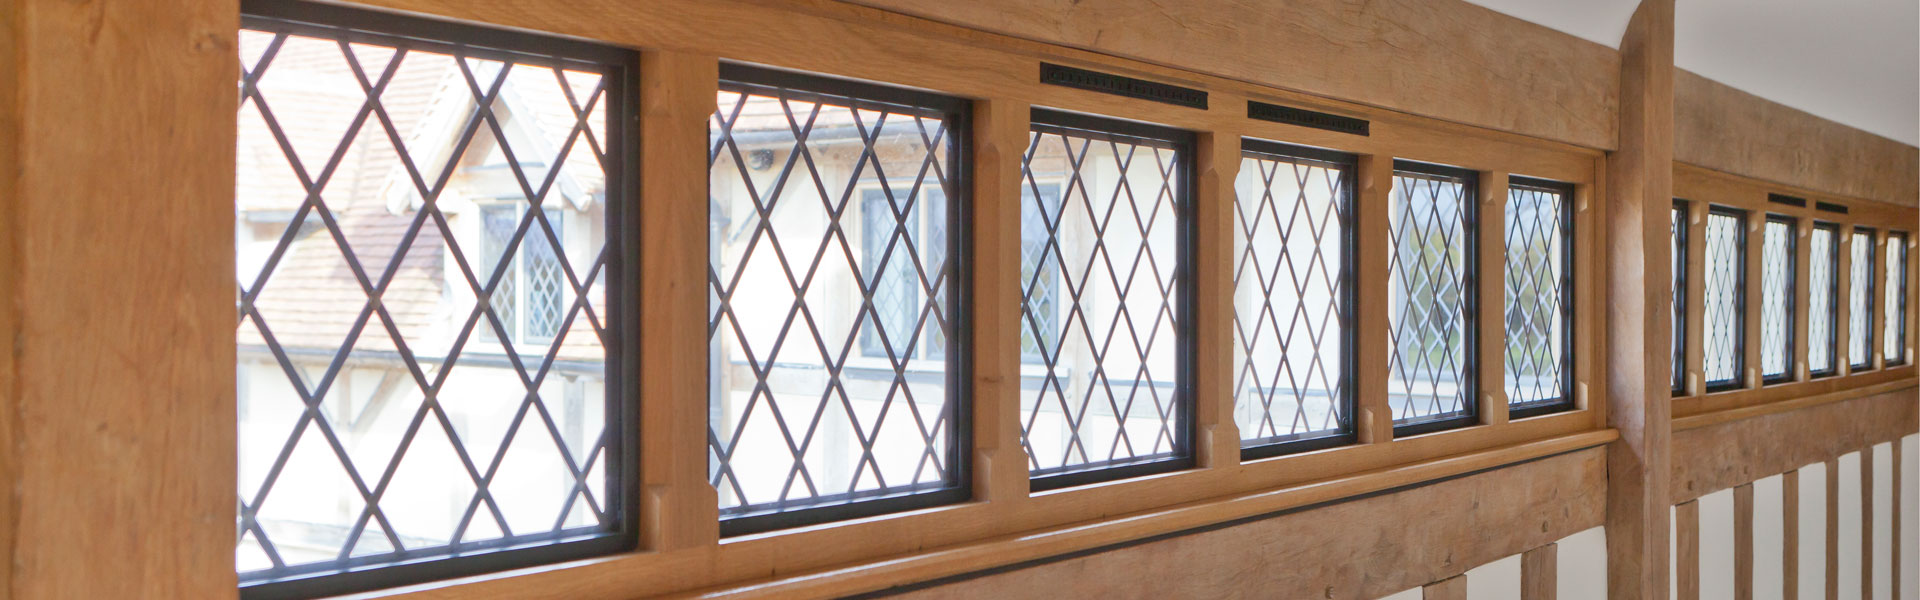 lead detailed timber framed hallway windows